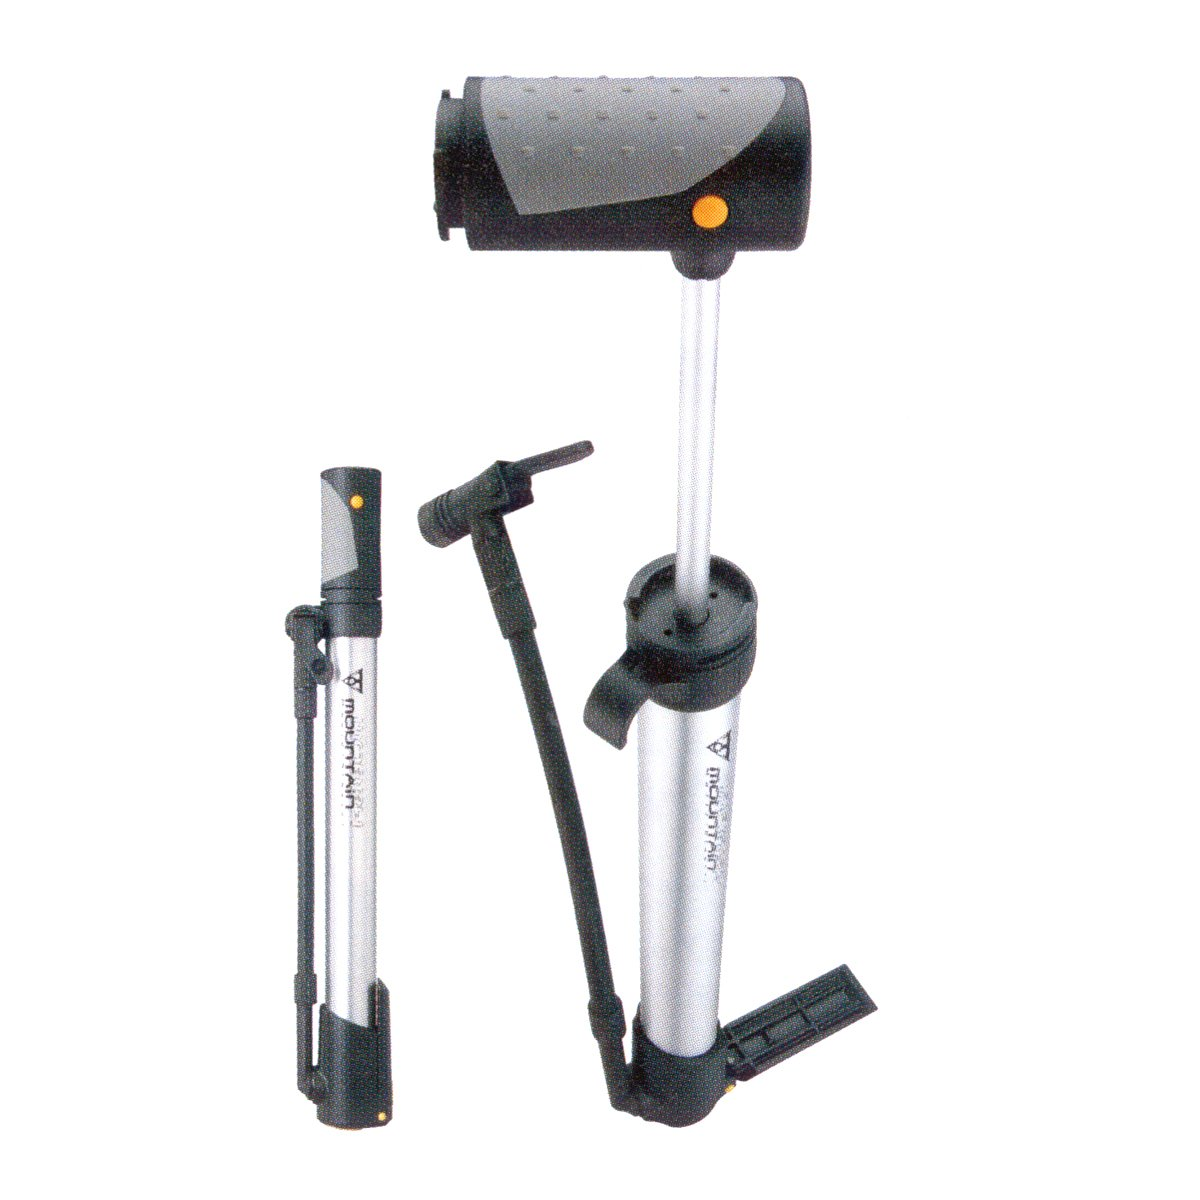 Topeak Mountain Morph Bike Pump by Topeak (Image #3)